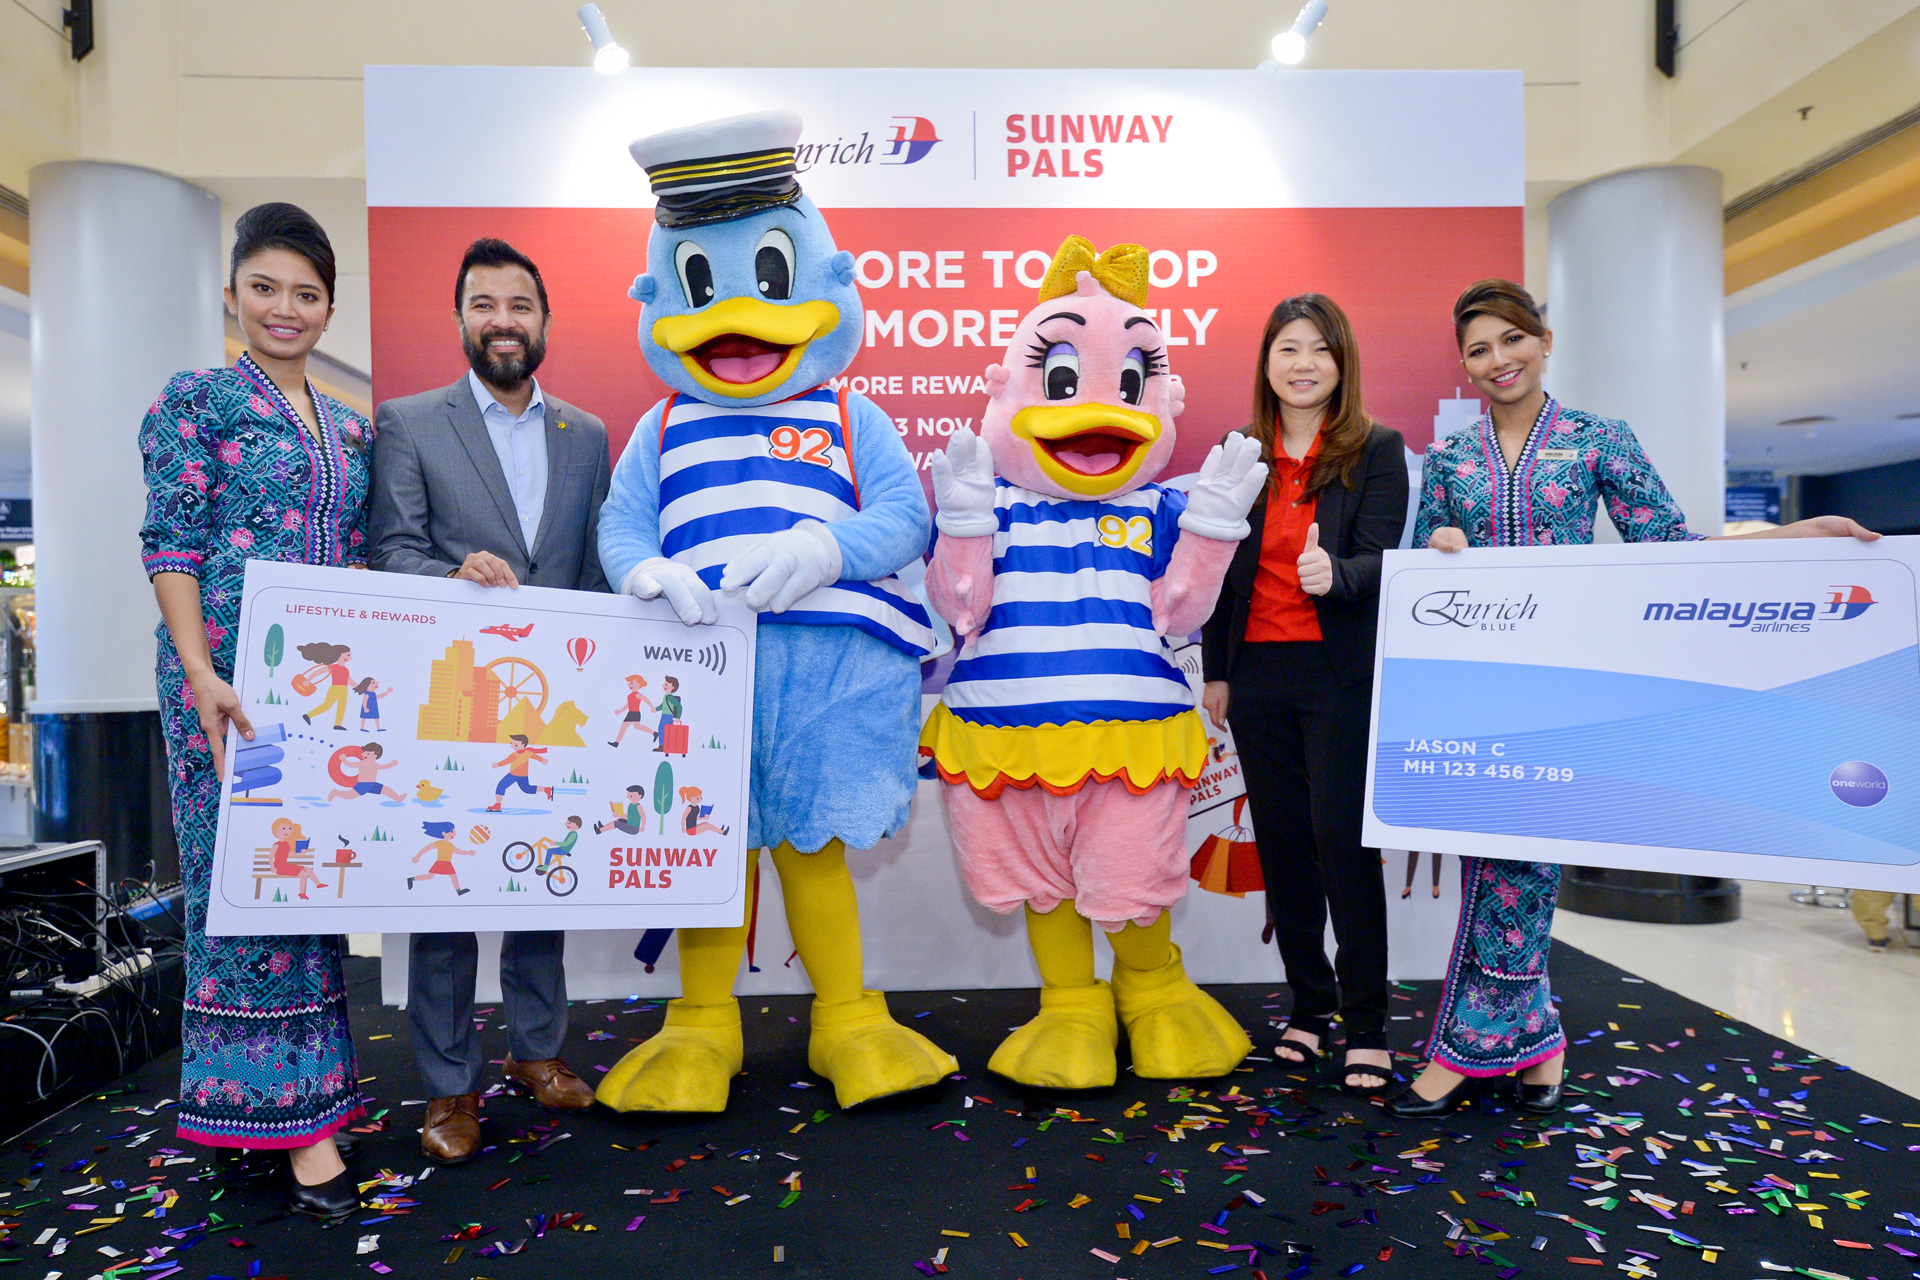 Sunway Pals Partners with Enrich to Benefit Avid Members